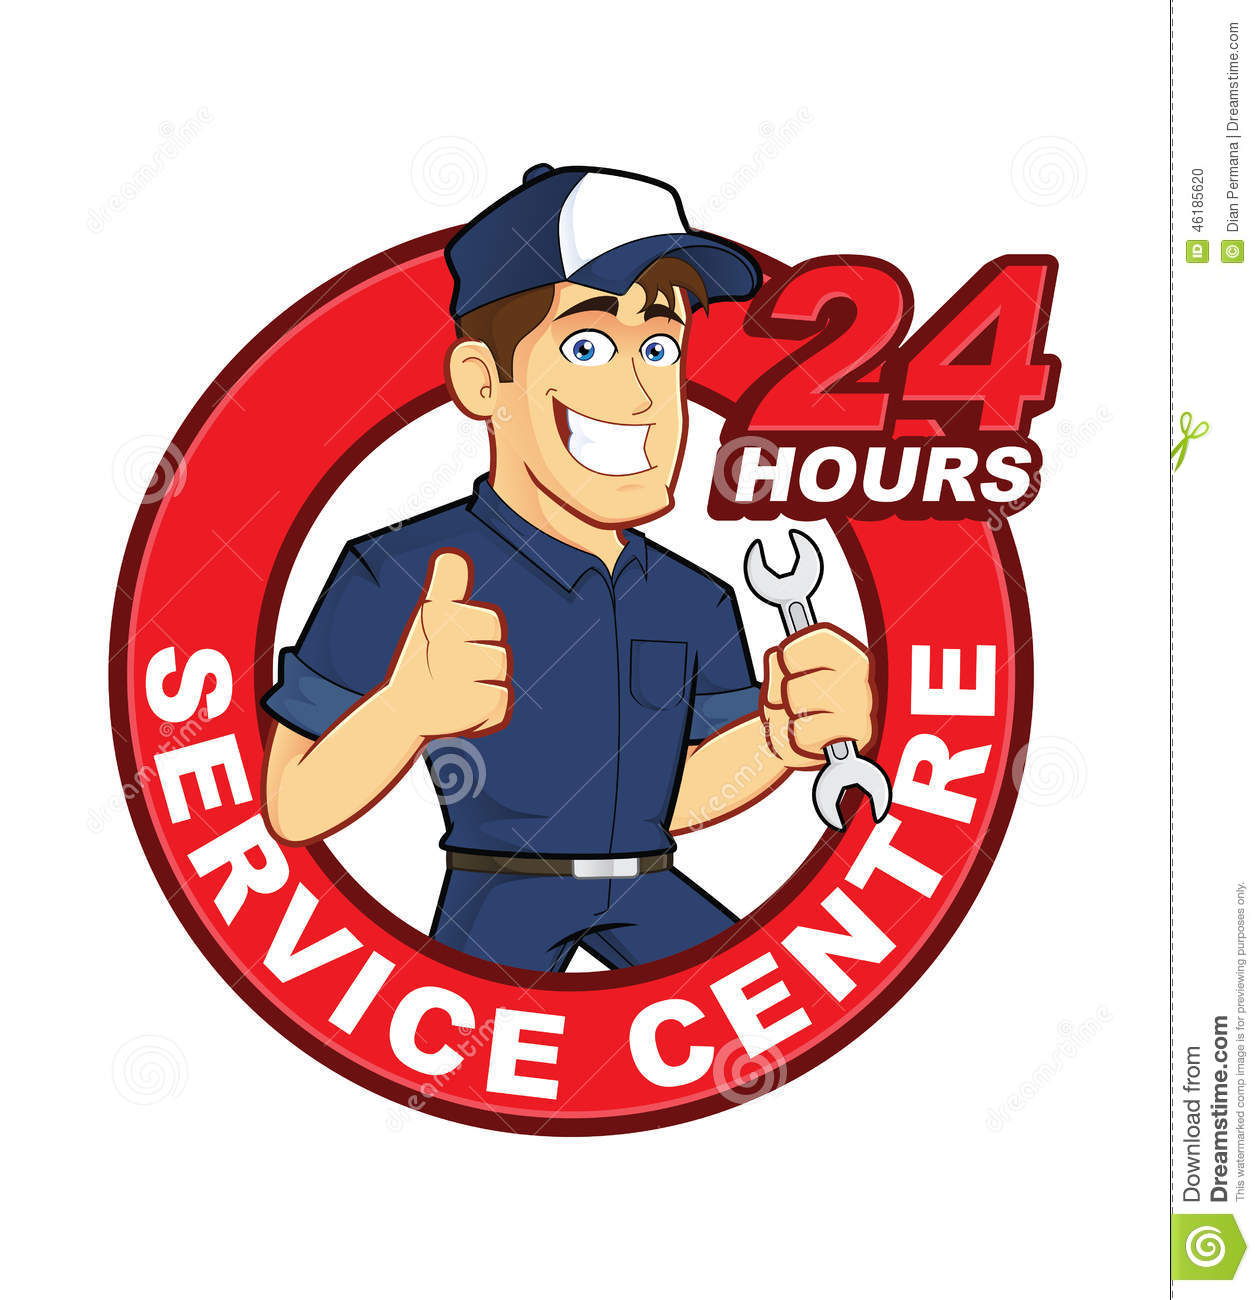 Mechanic Service Centre Stock Illustrations 466 Mechanic Service Centre Stock Illustrations Vectors Clipart Dreamstime